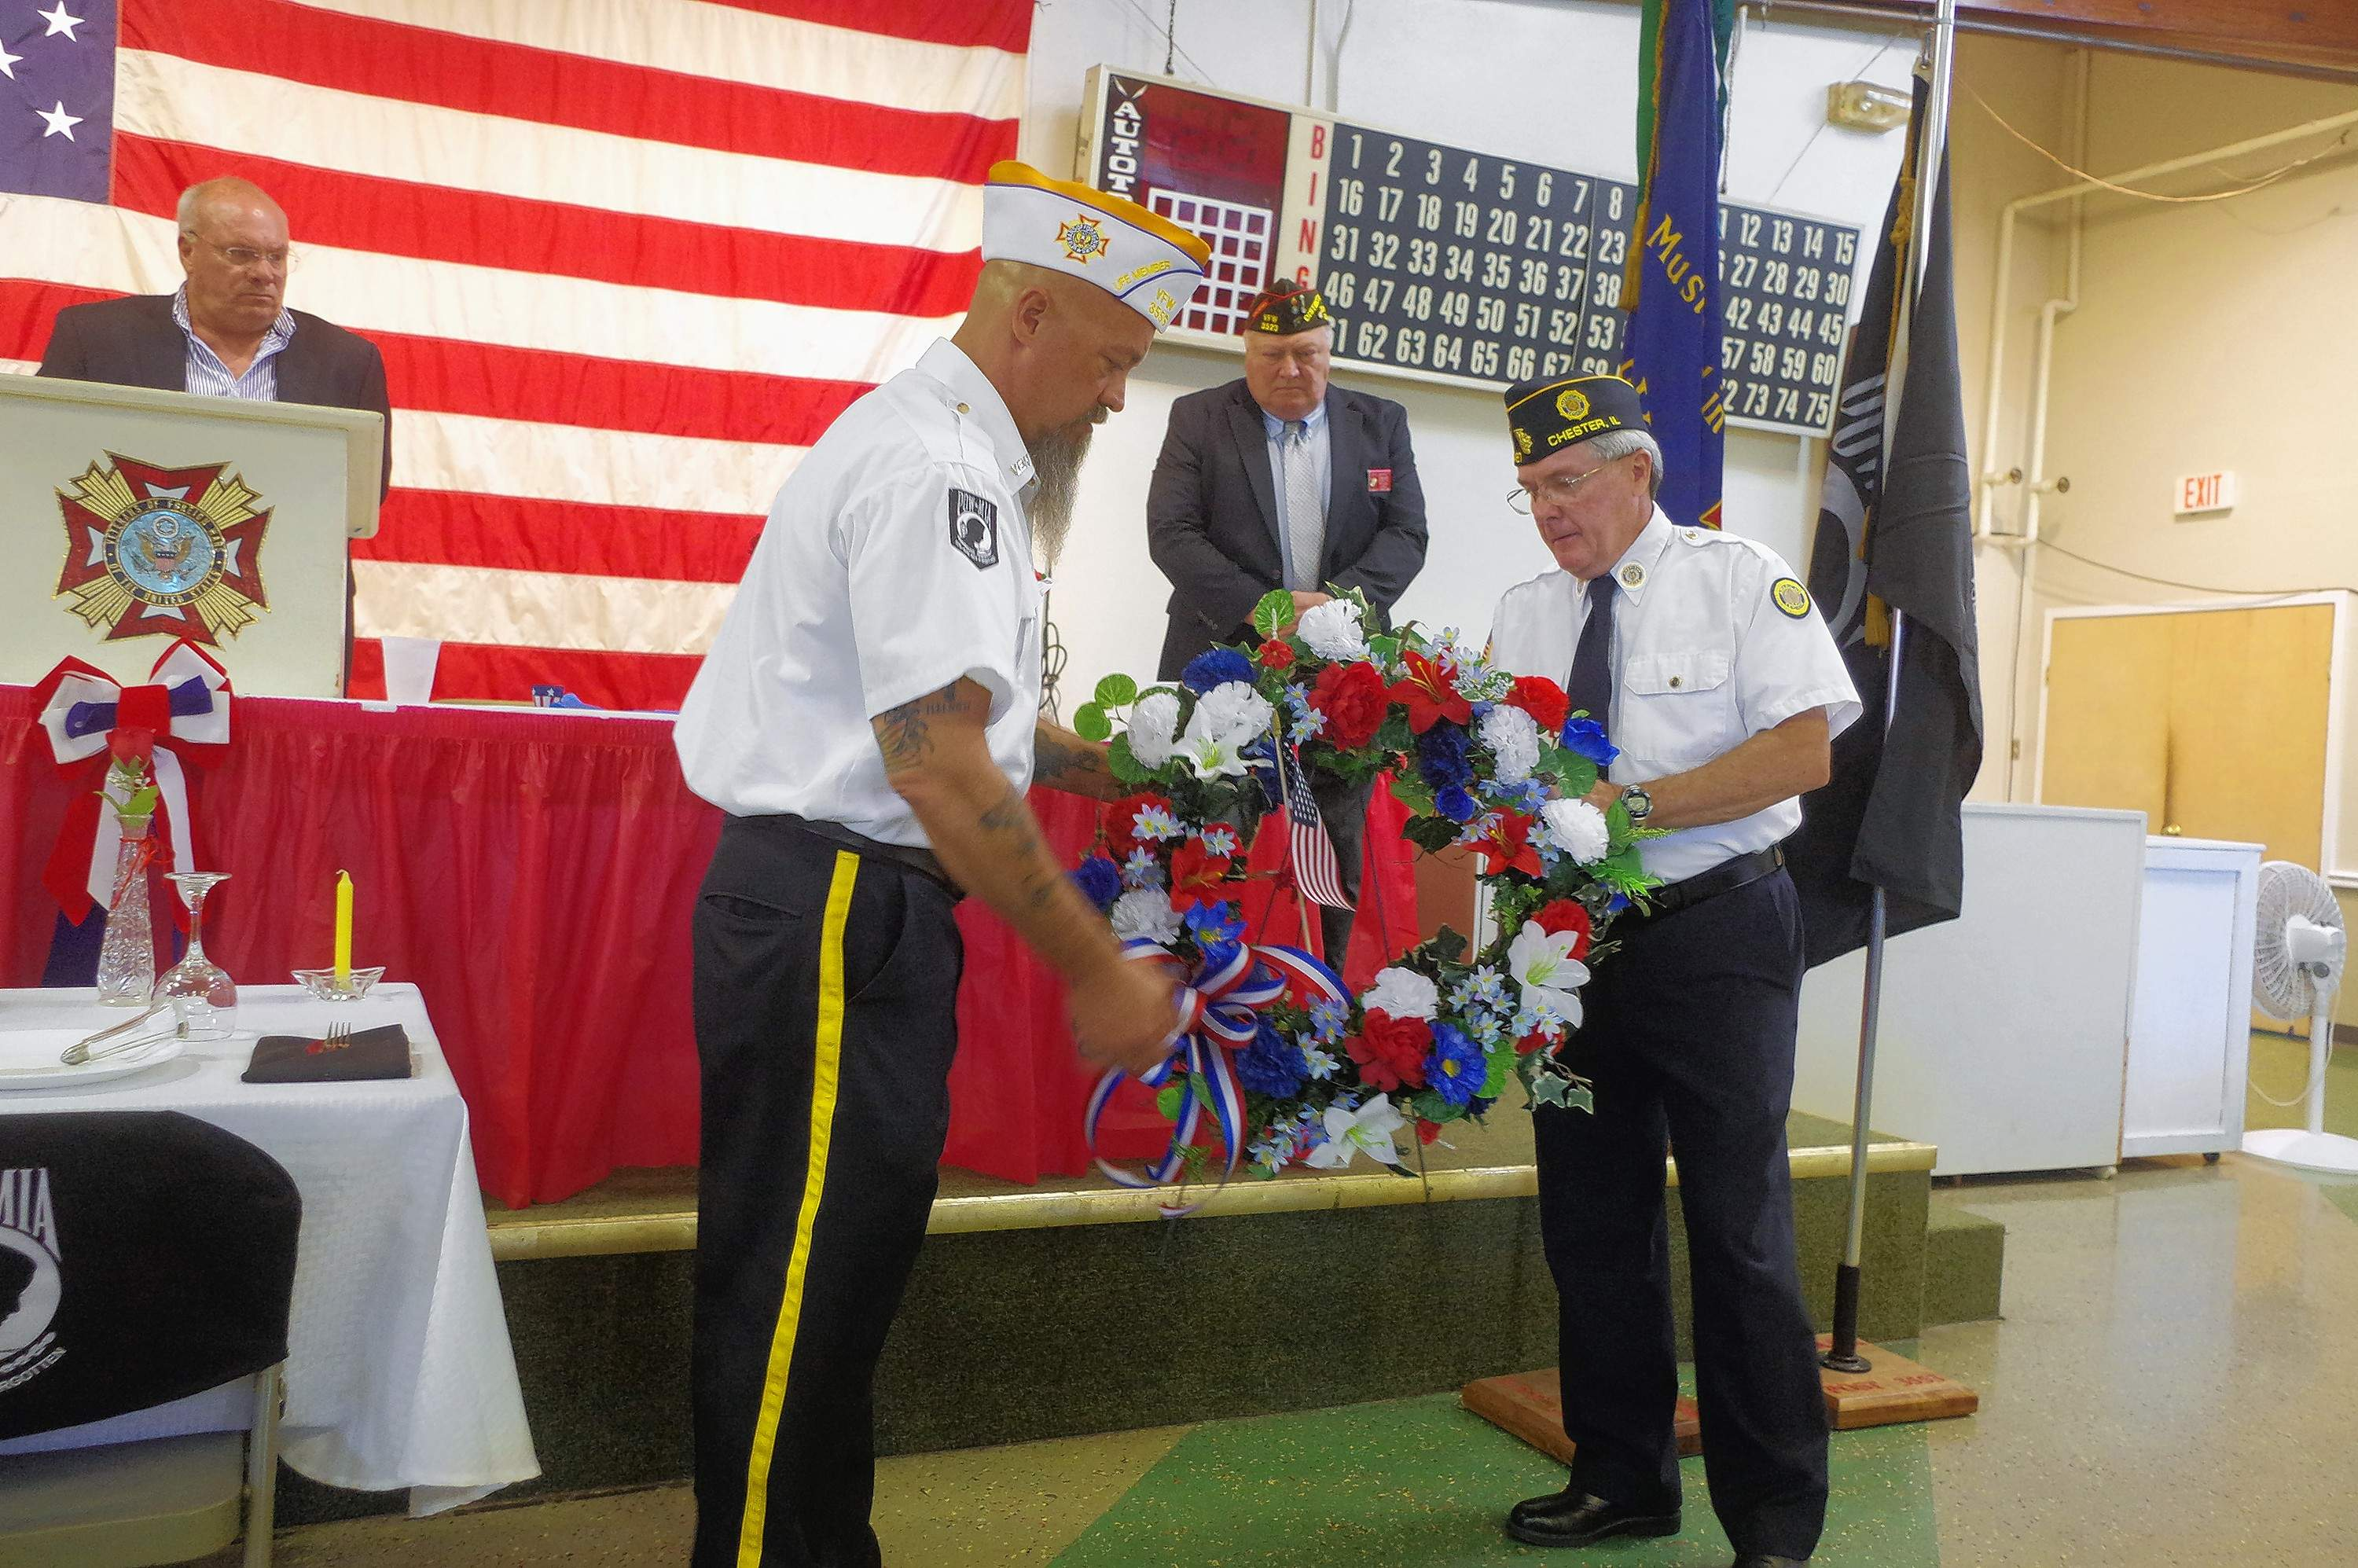 Chester VFW Post 3553 Commander Tony Payne (left) and Chester American Legion Post 487 Commander Jeff Warhausen (right) place a wreath in memory of the departed veterans at the 2018 Chester Memorial Day Service hosted at the Chester VFW Post.